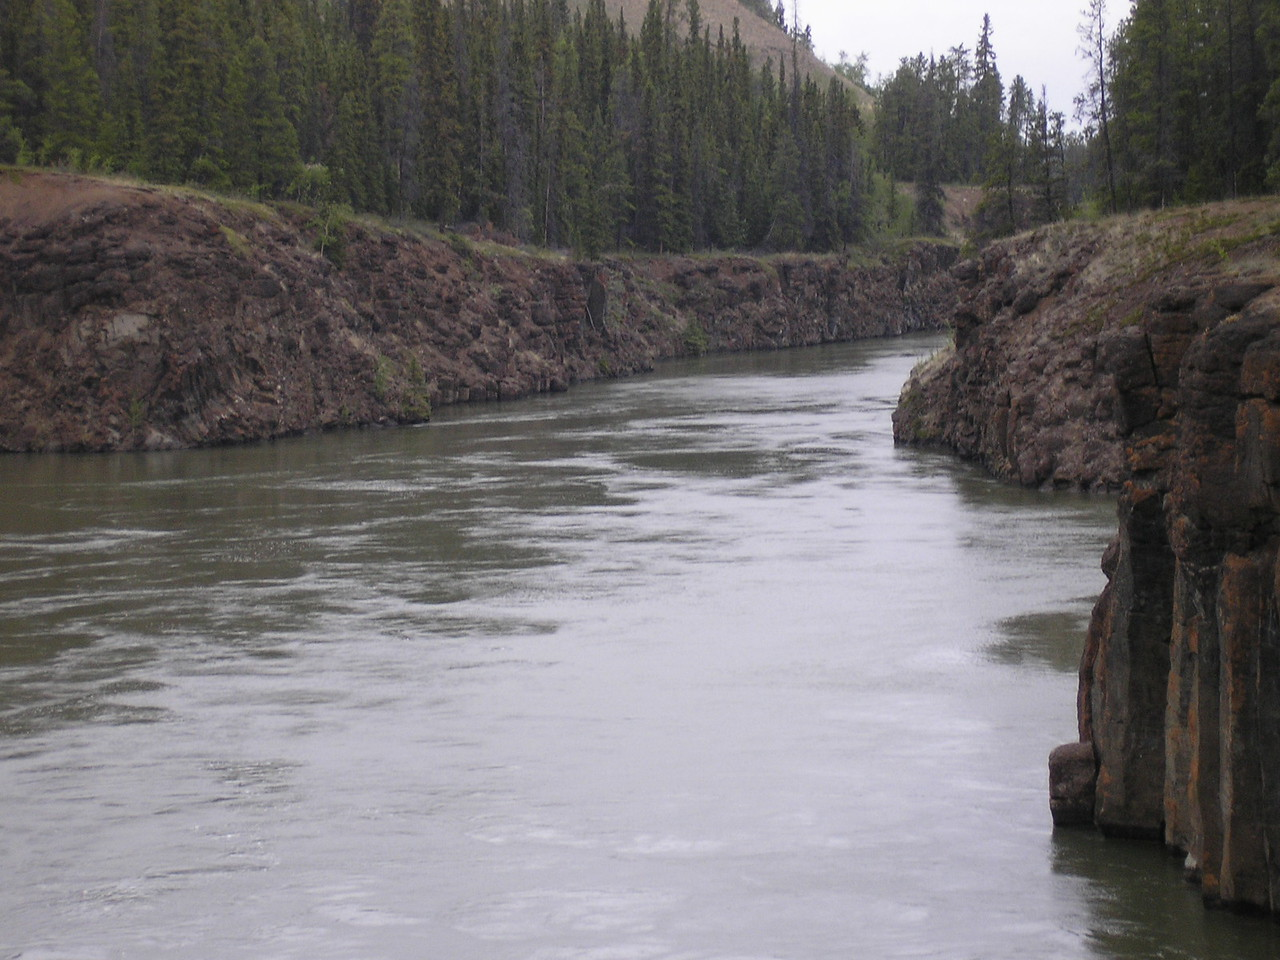 Whitehorse rapids on the Yukon Rive.